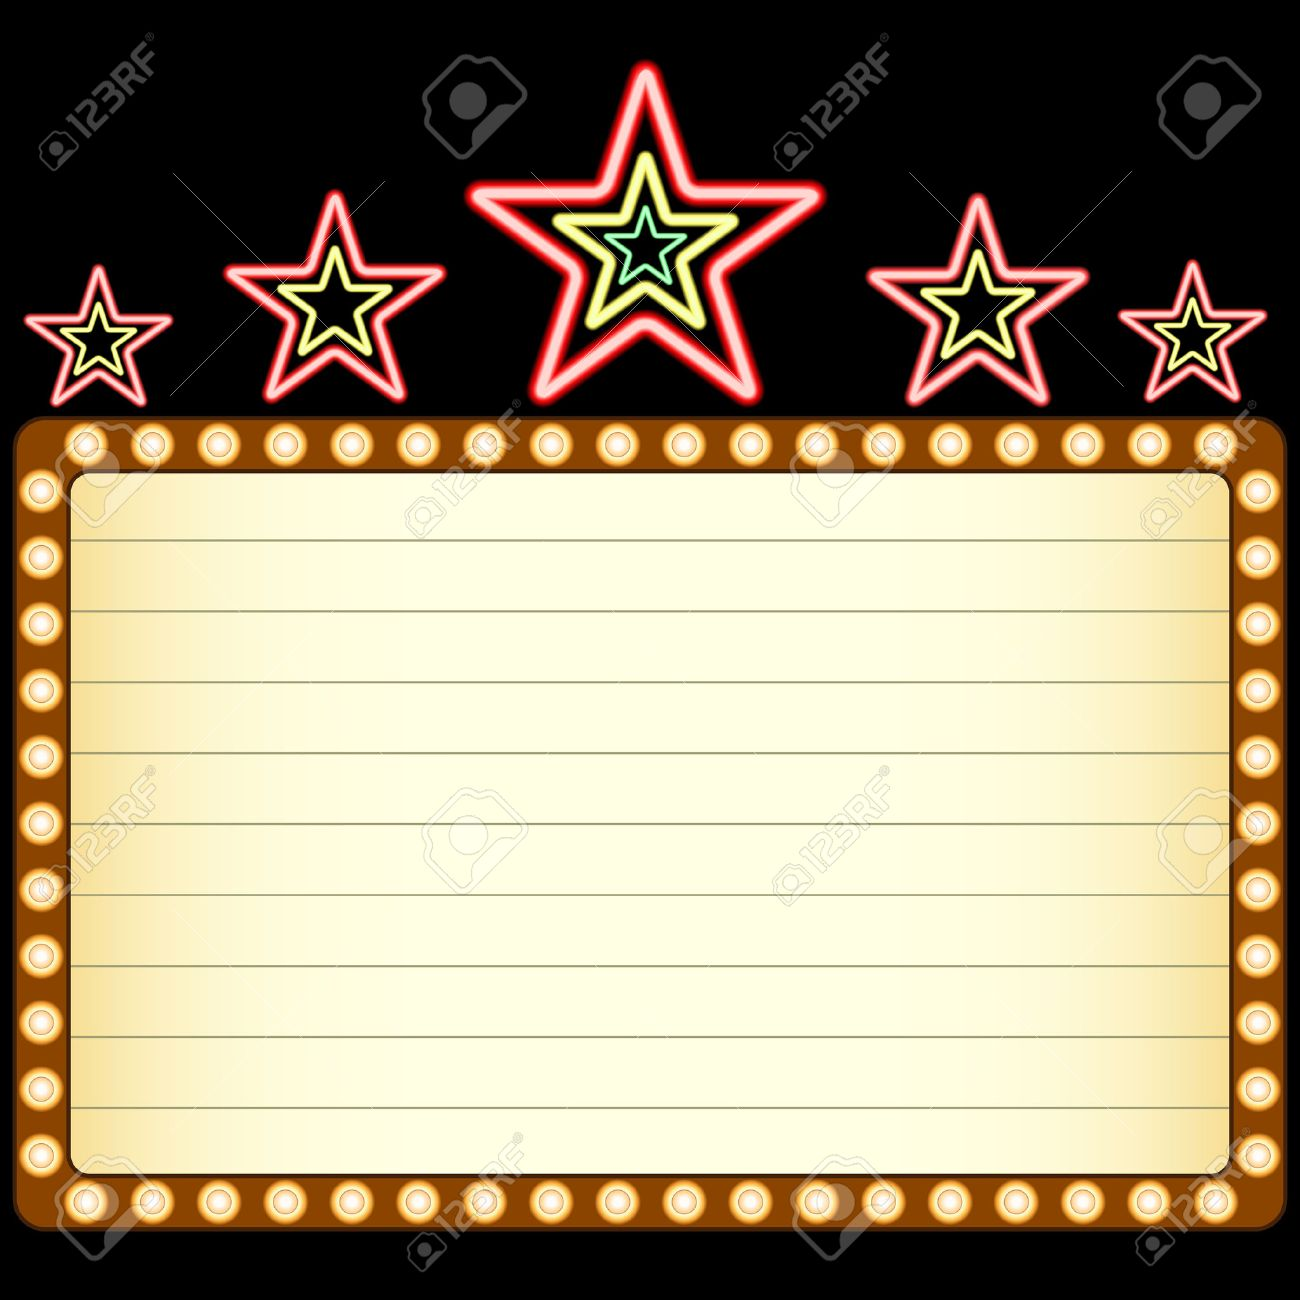 Blank movie, theater or casino marquee with neon stars above isolated on black background. Stock Vector - 5571558